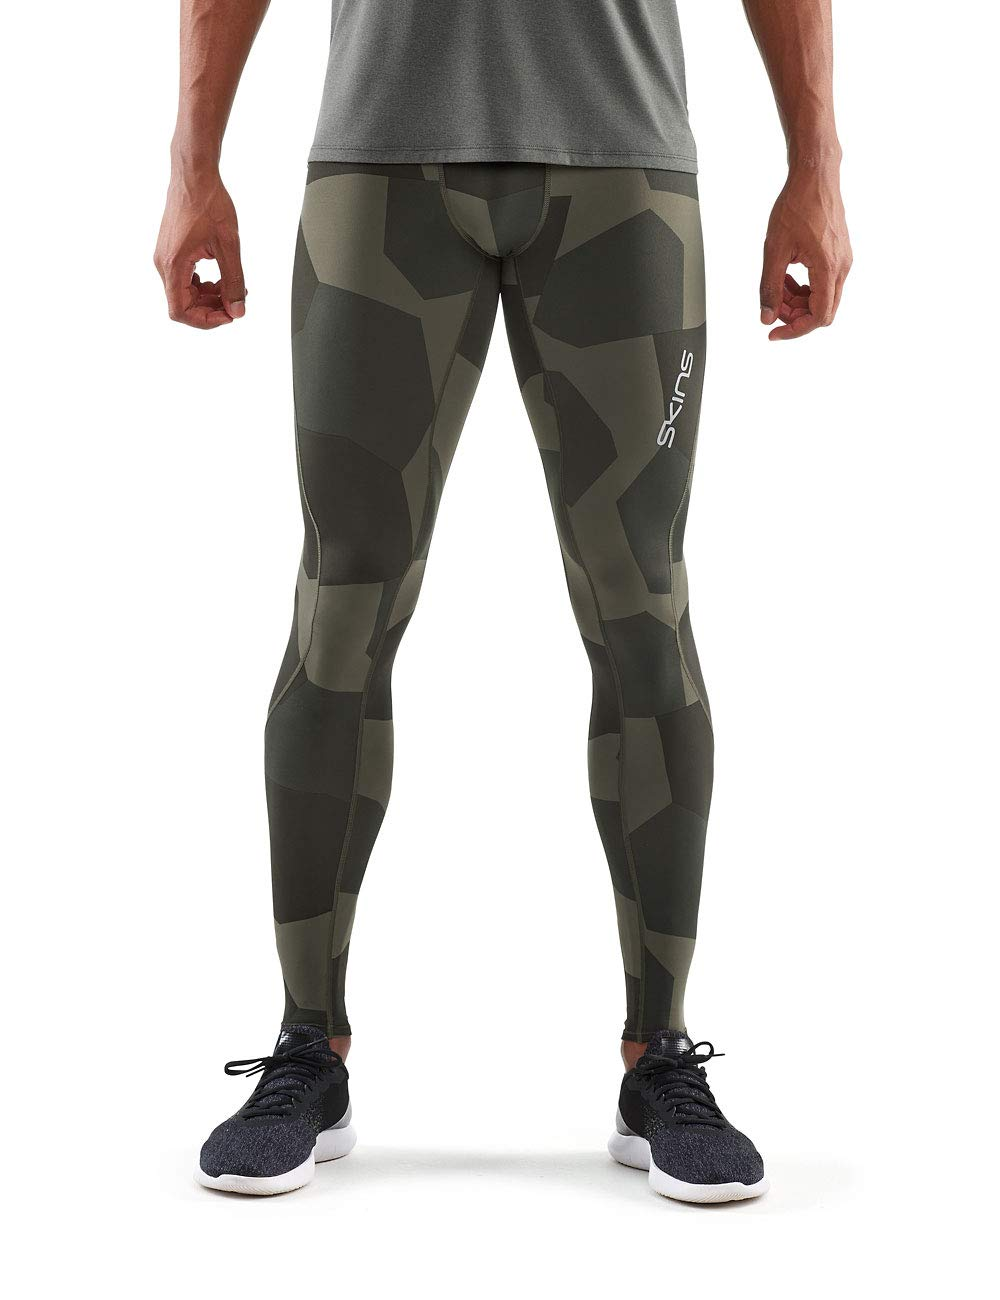 SKINS DNAmic Pour des hommes Long Tights petit Camo Utility XS Homme, FR Taille Fabricant